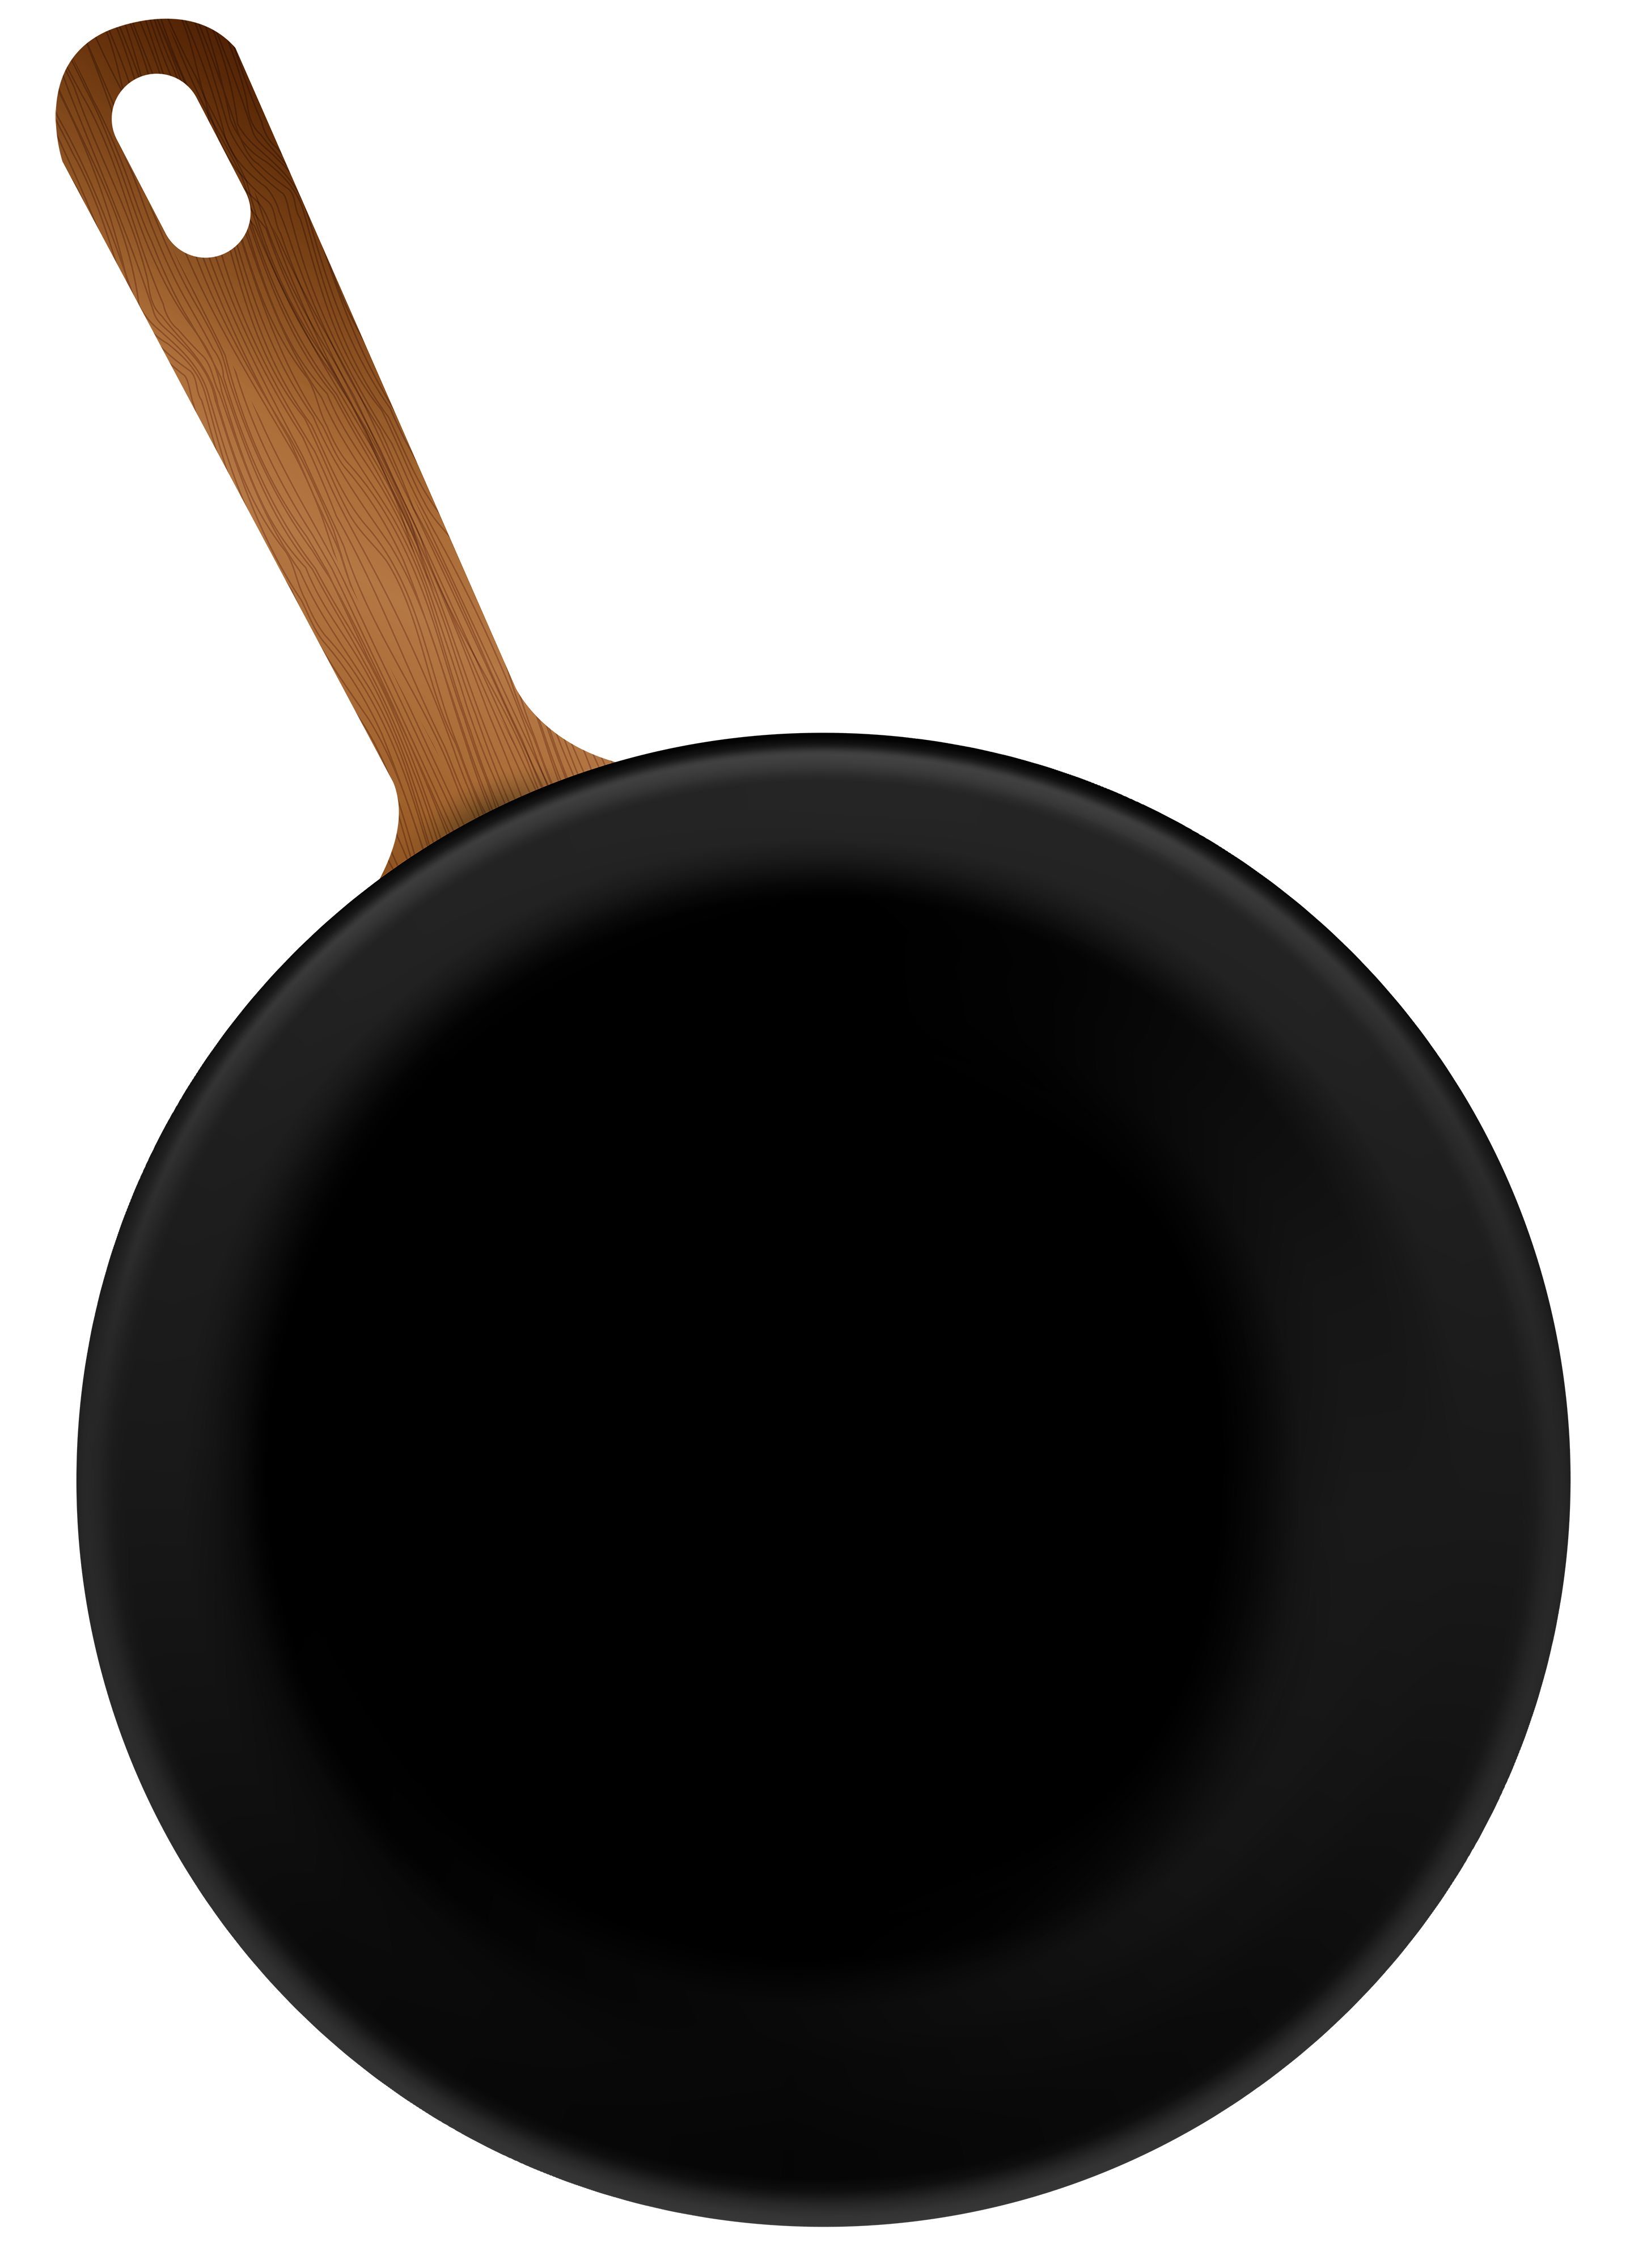 Frying Pans Png image #43337